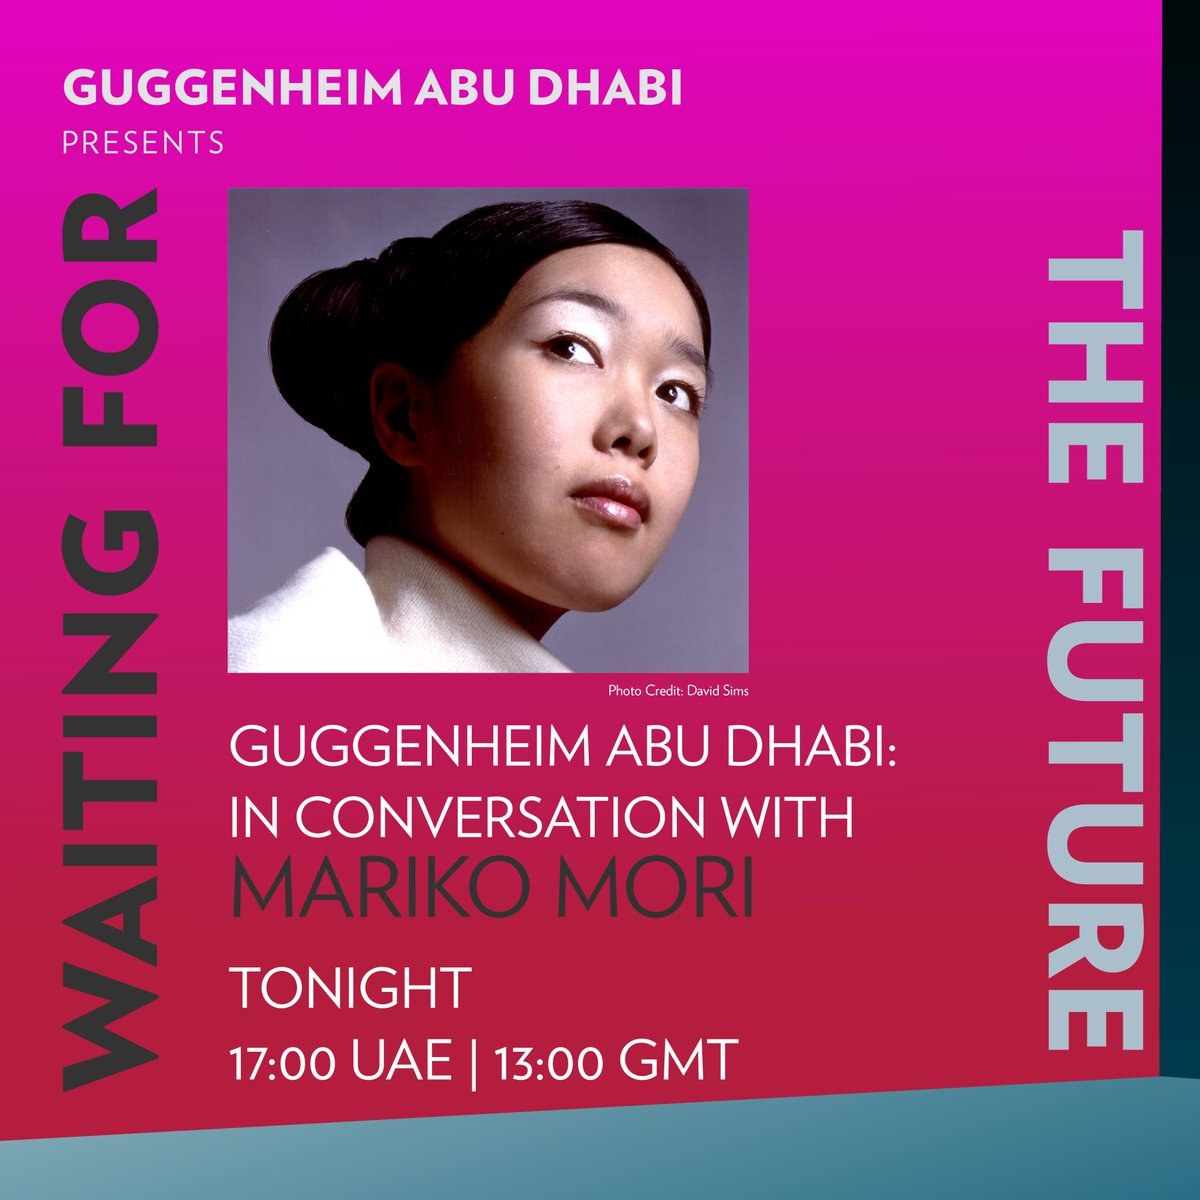 #CulturAllMeet Tonight, Guggenheim Abu Dhabi engages Mariko Mori in a conversation about 'Esoteric Cosmos' (1996–98) followed by 'Miko No Inori' (1996) screening.  Watch it at 5:00PM UAE (1:00PM GMT) – https://t.co/yY0U0QnKSn  #CulturAll https://t.co/uvCj3UoPSO